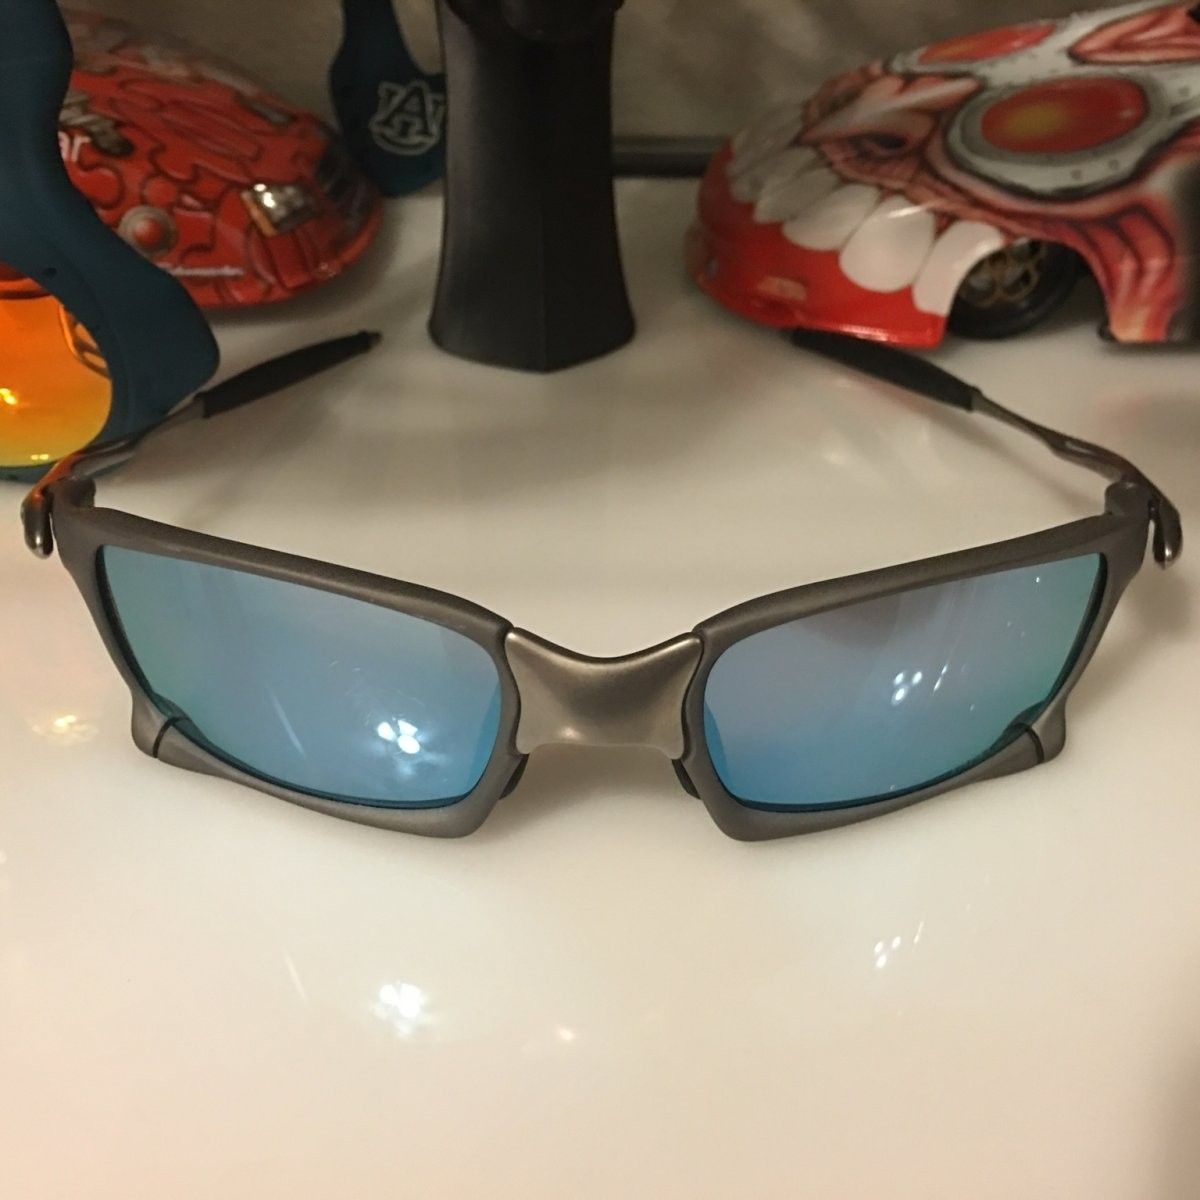 Reverse TiO2 XS with Deep Water Prizm lenses - ImageUploadedByTapatalk1453569653.185056.jpg